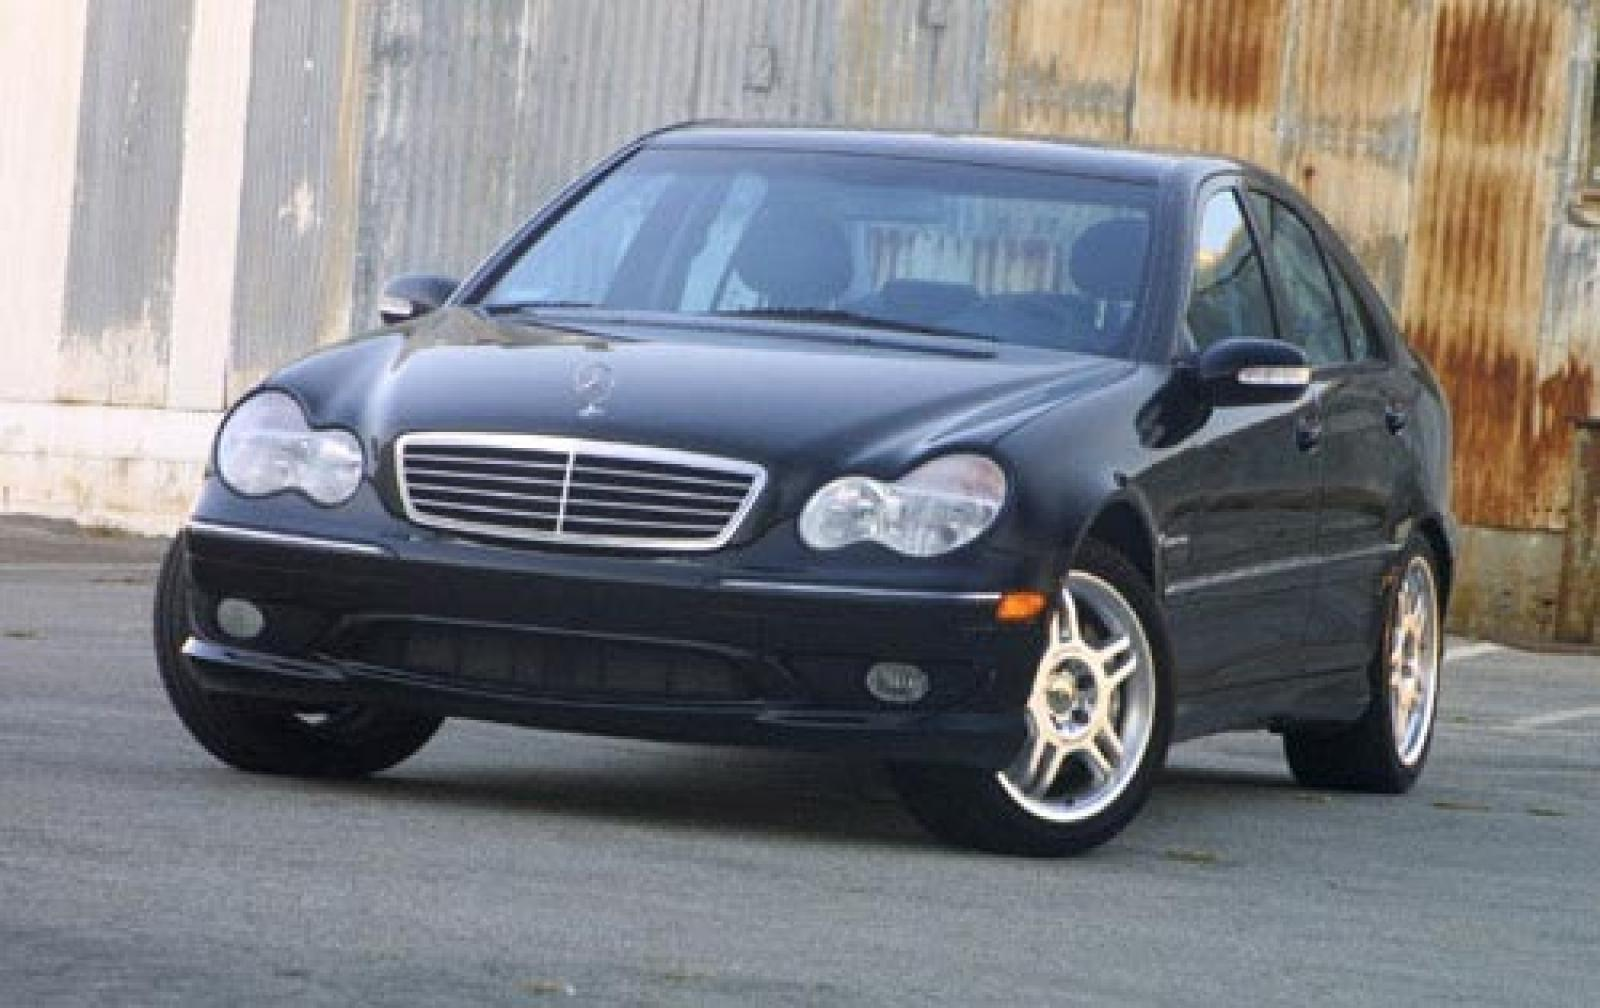 2002 mercedes benz c class blue 200 interior and exterior images. Black Bedroom Furniture Sets. Home Design Ideas